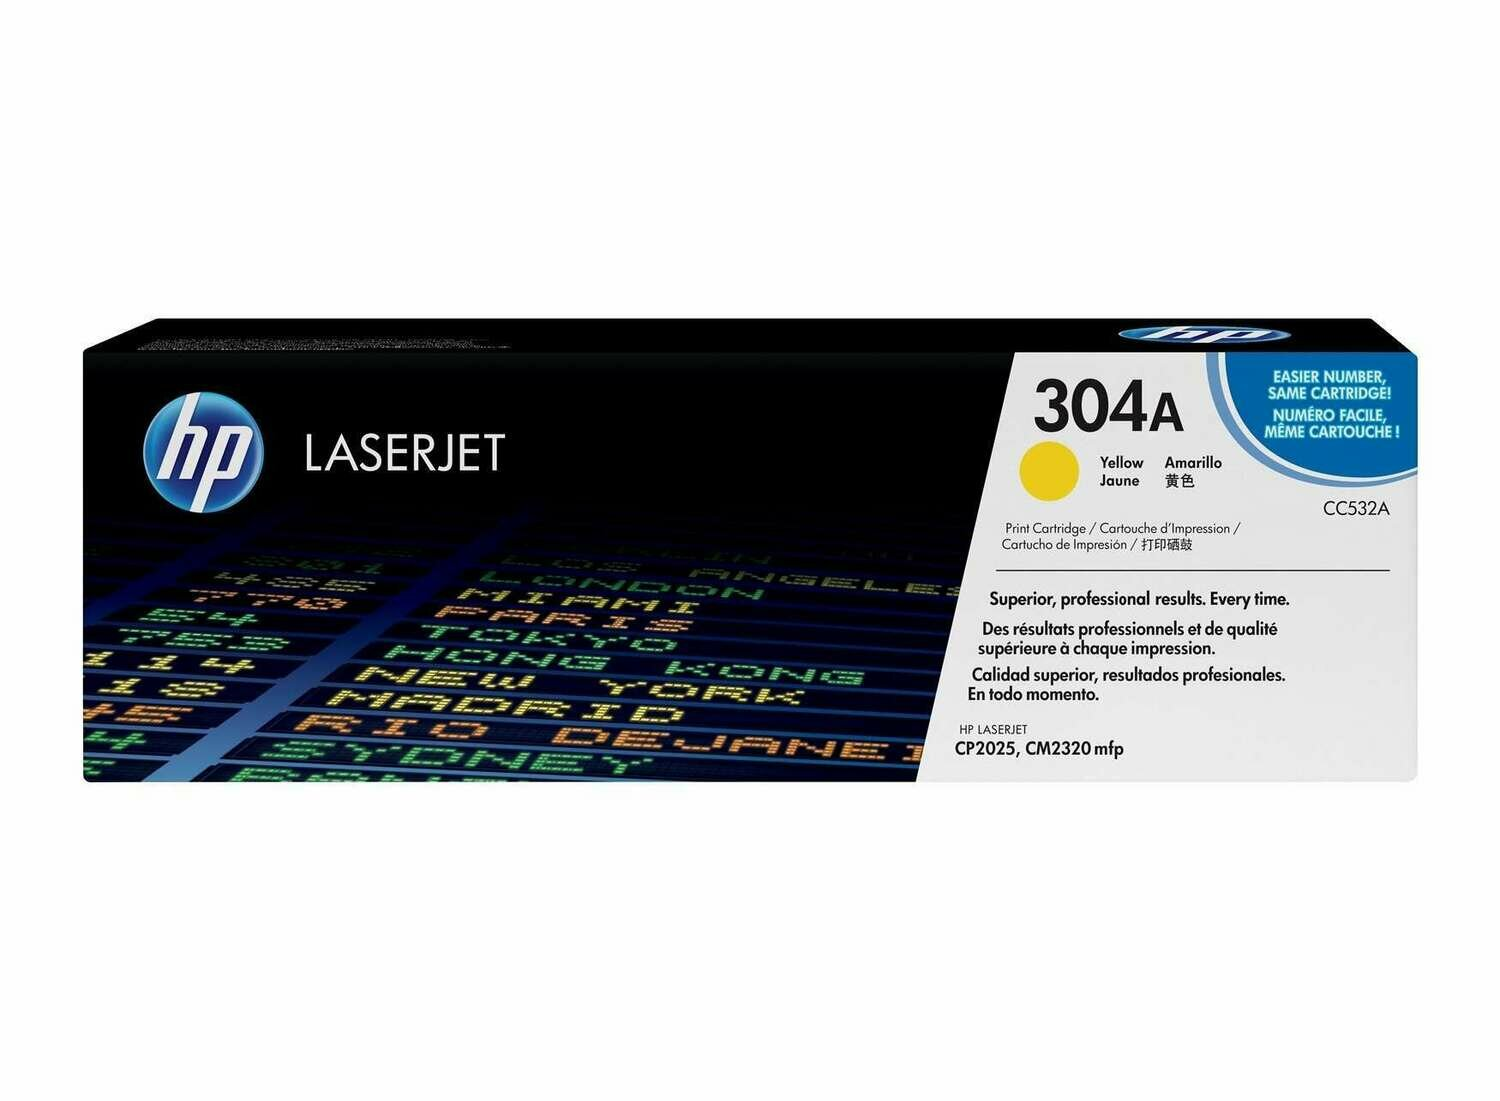 HP 304A Yellow Toner Cartridge [CC532A]